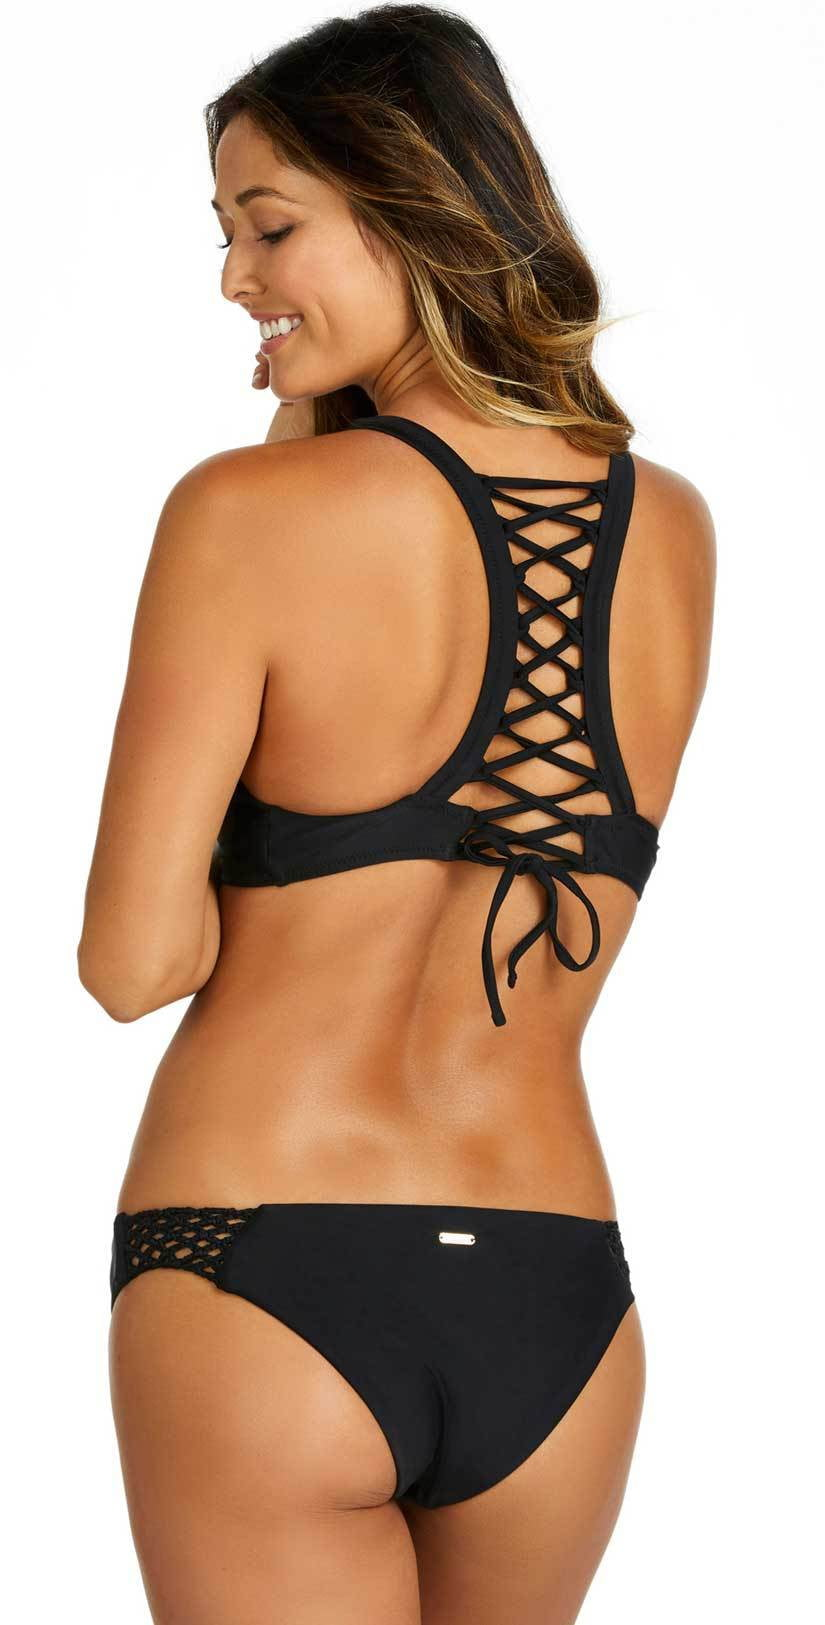 Raisins Sayulita Mai Tai Bottom in Black Y710052M-BLK: